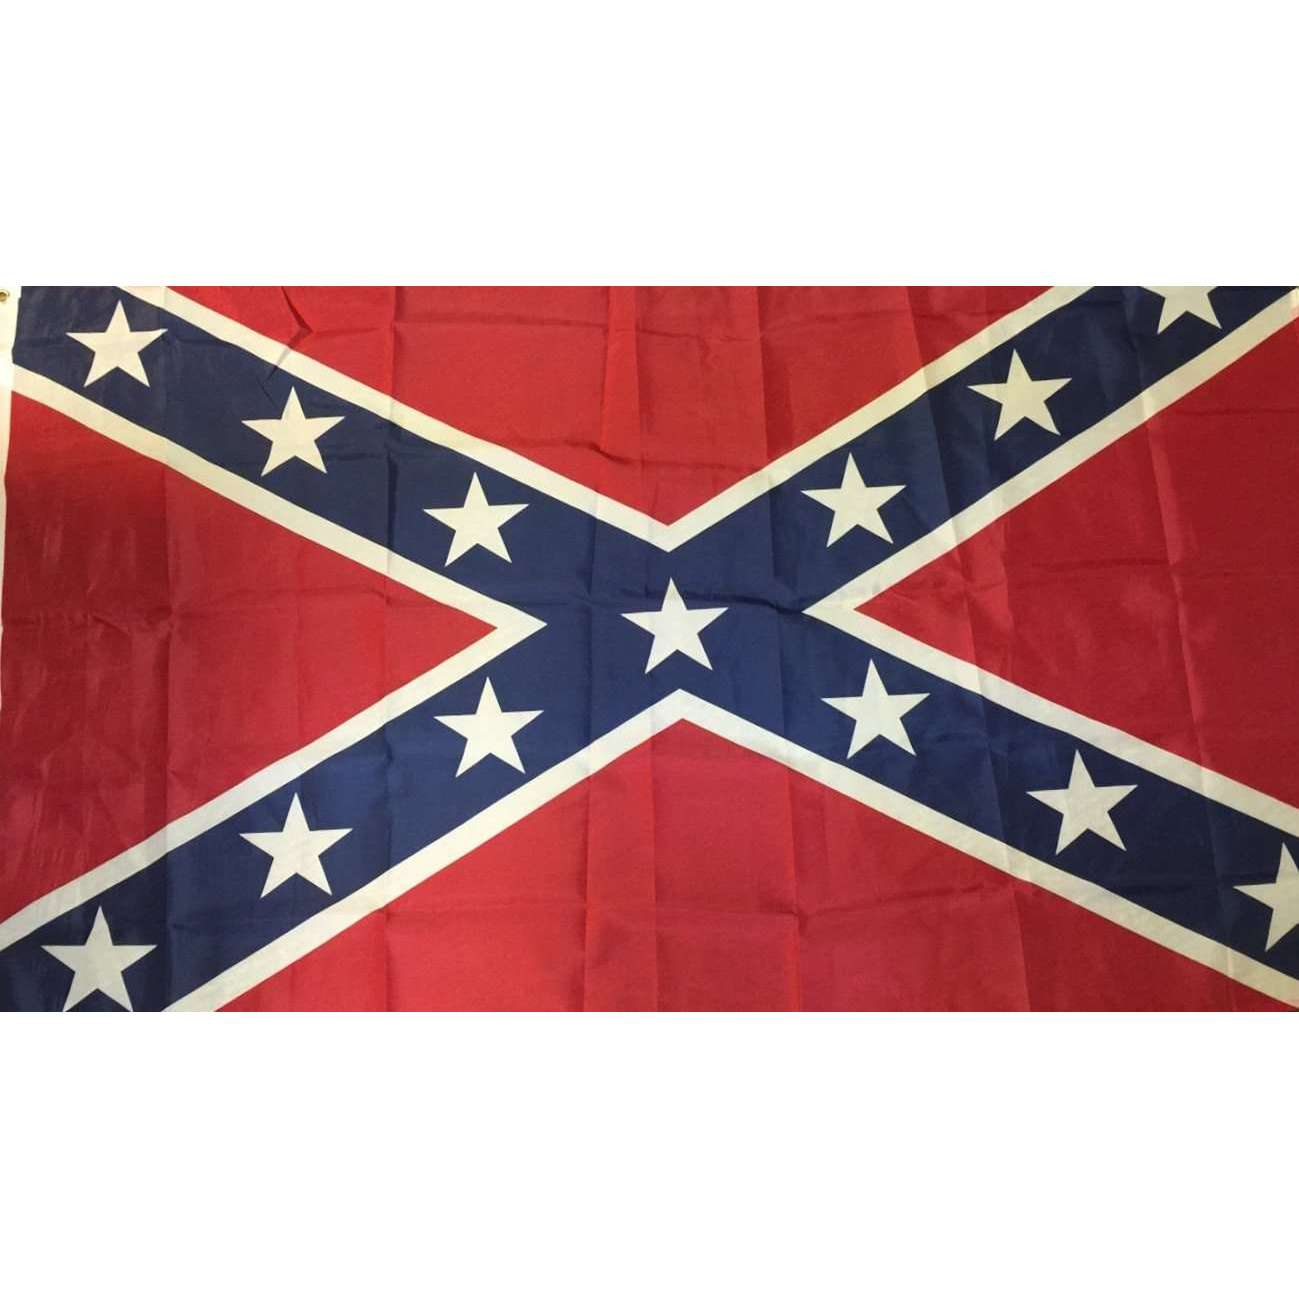 Confederate flag 3x5 lightweight polyesterflagthe dixie shop 14558326 jpgv1536521504